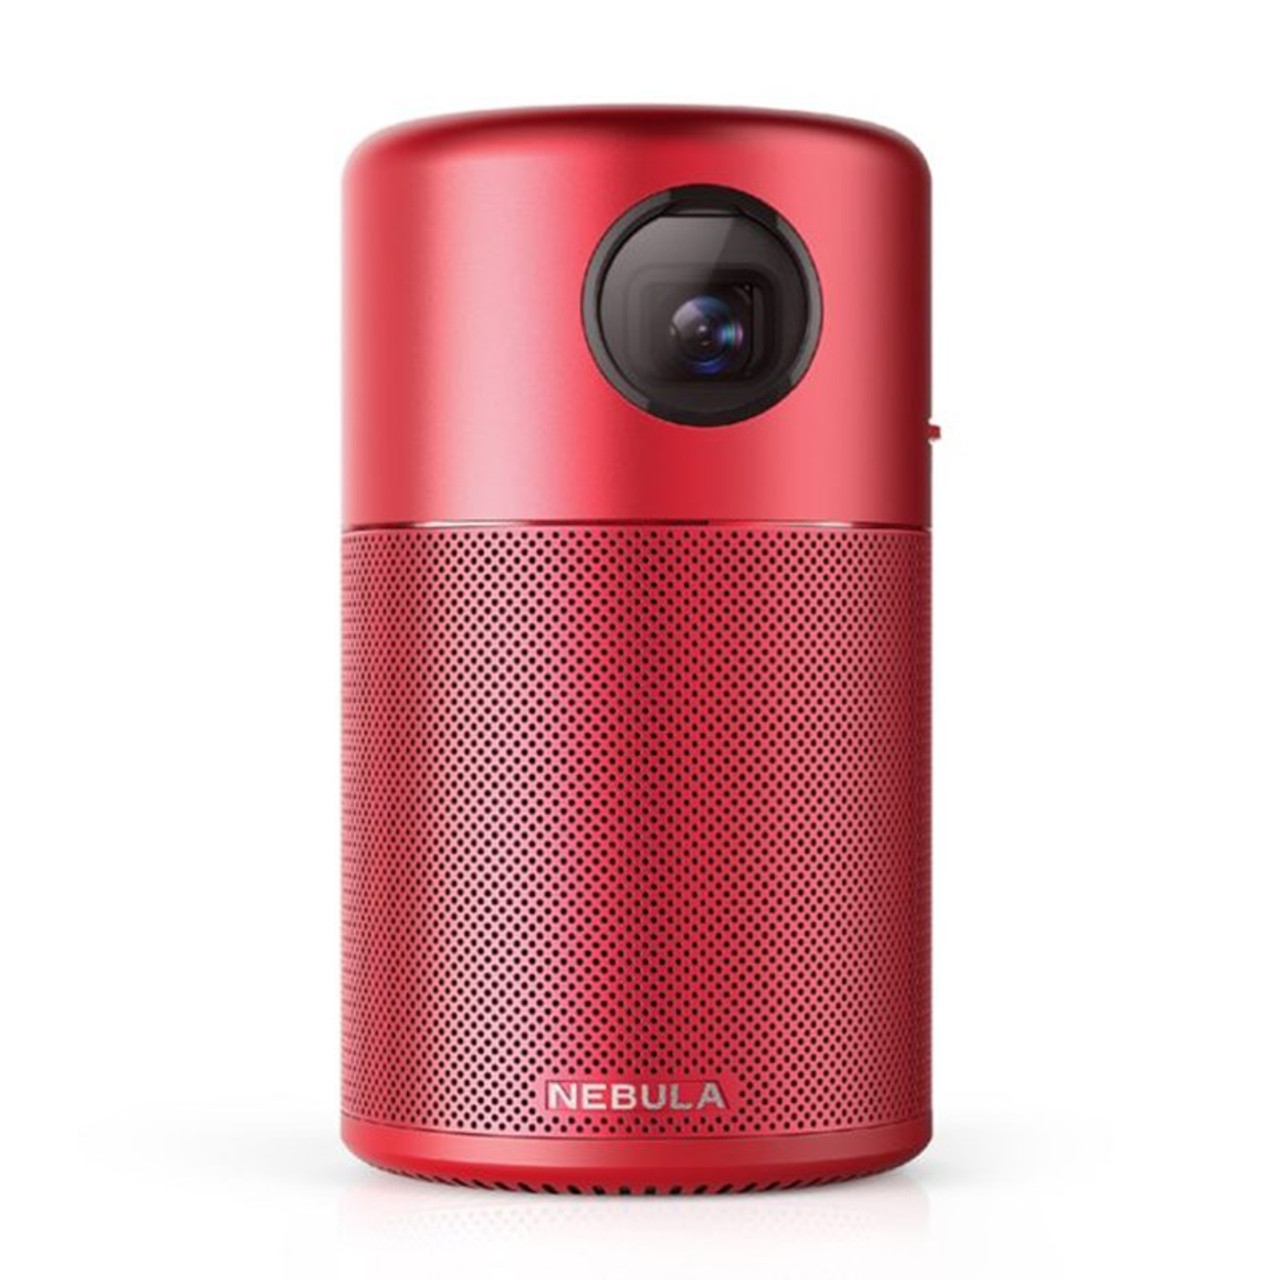 Image for Anker Nebula Capsule FWVGA Portable Wireless DLP Projector - Limited Red Edition CX Computer Superstore